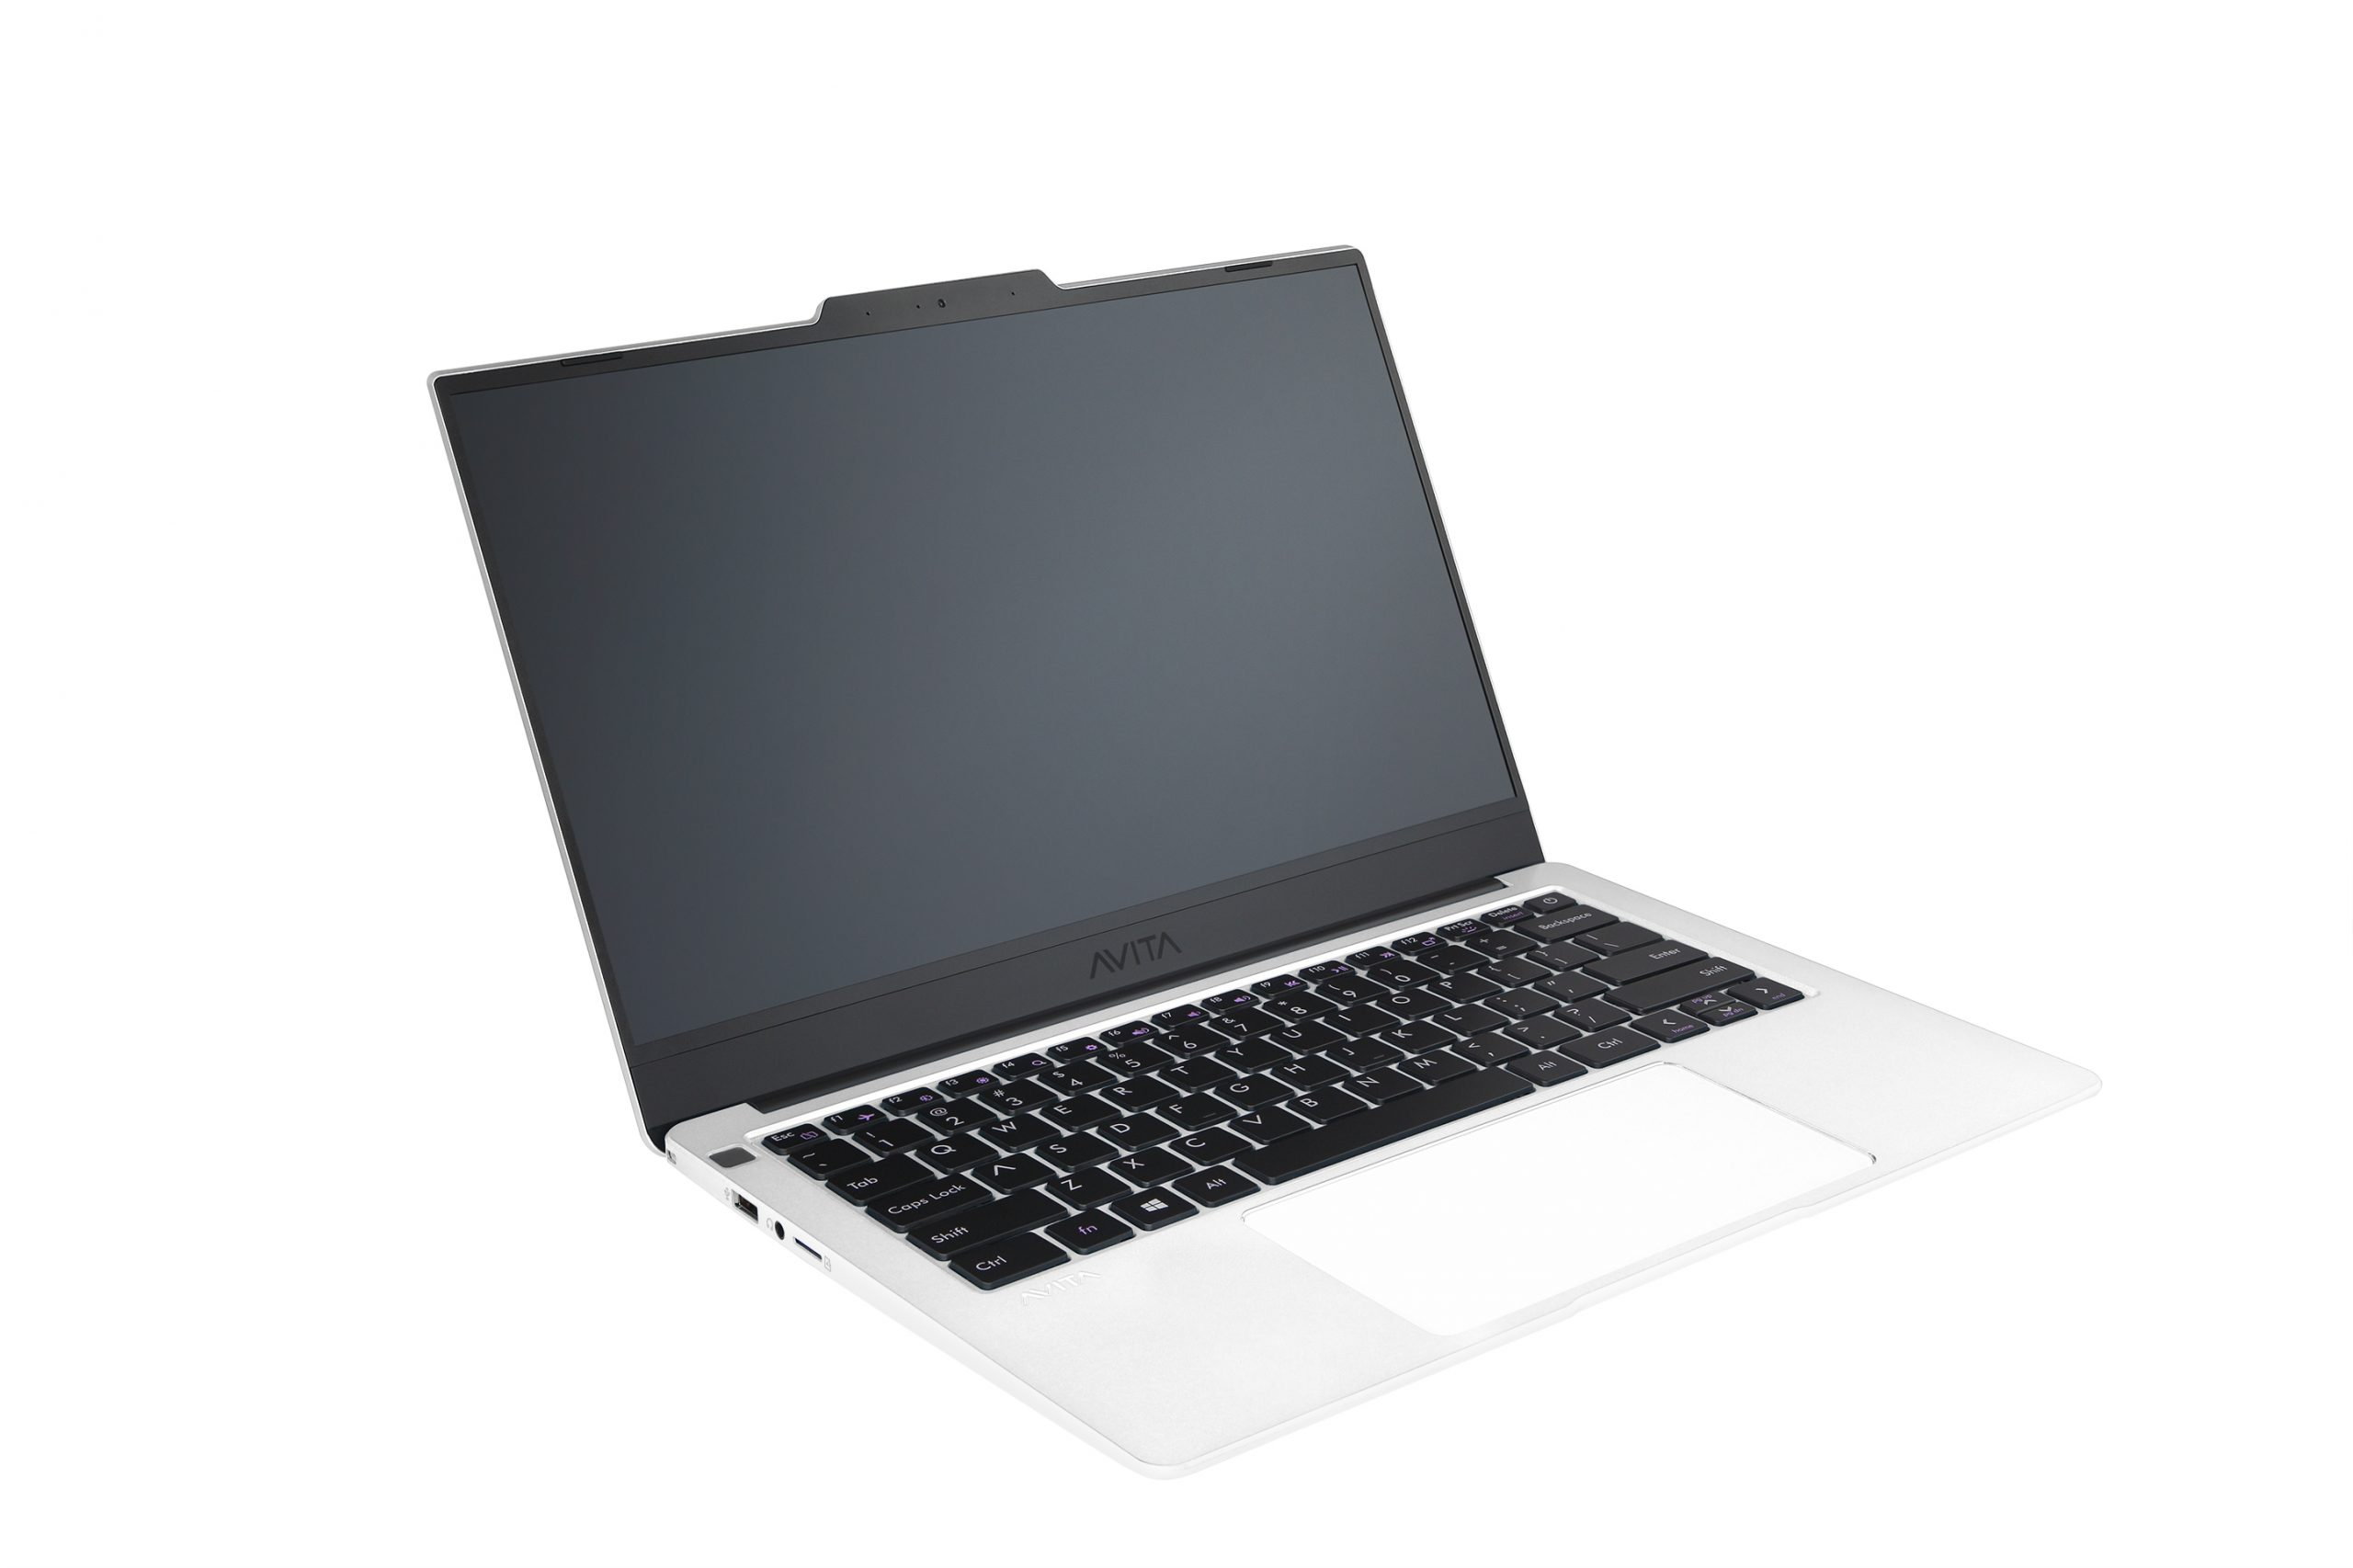 https://t2qwifi.com/wp-content/uploads/2020/07/avita_laptop_2020_angle1_0027_high_pearl-white-scaled.jpg